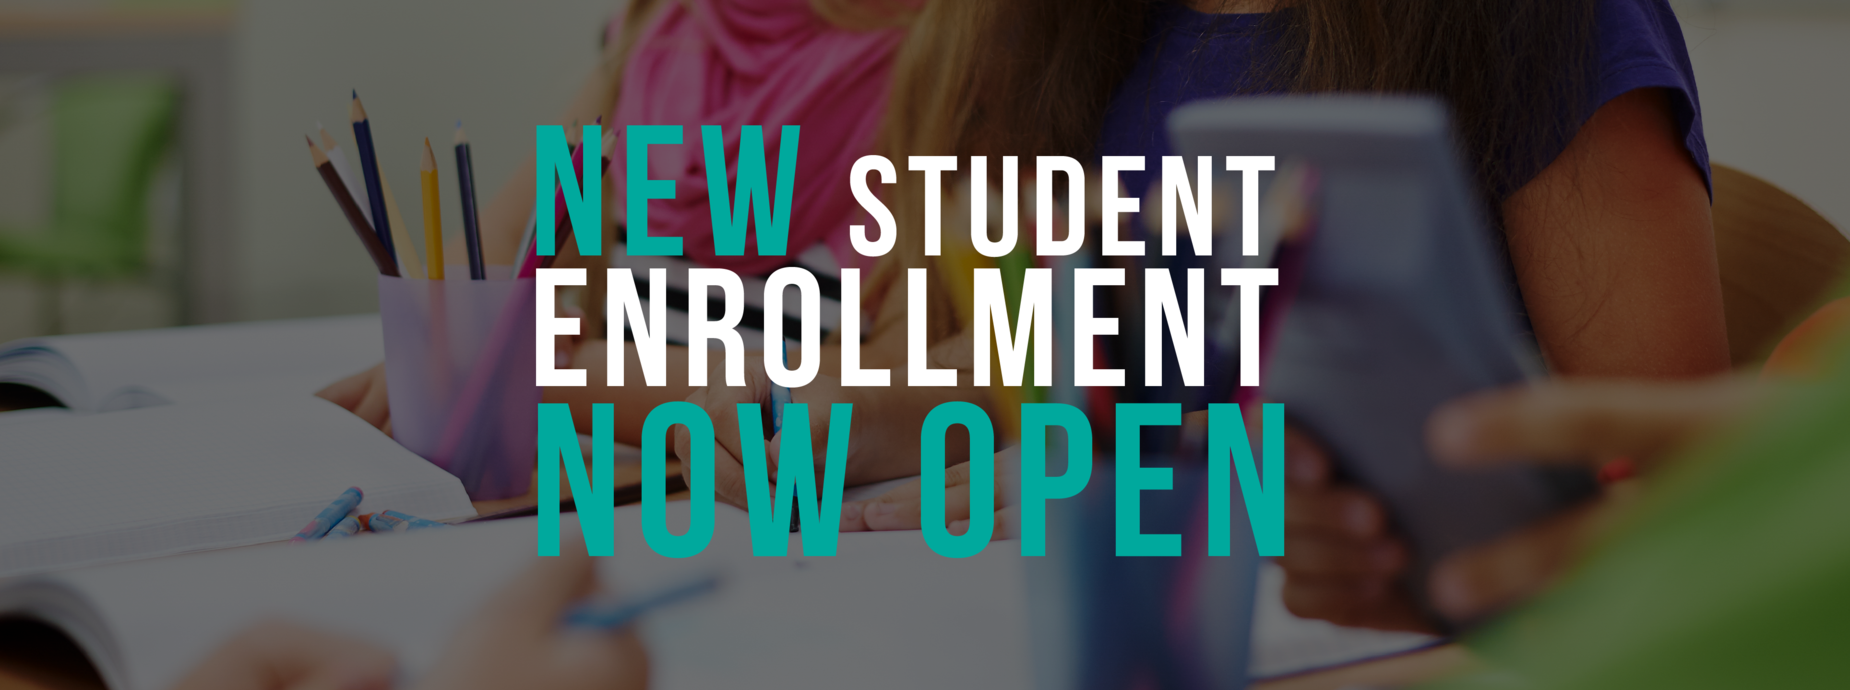 New Student Enrollment Now Open Banner